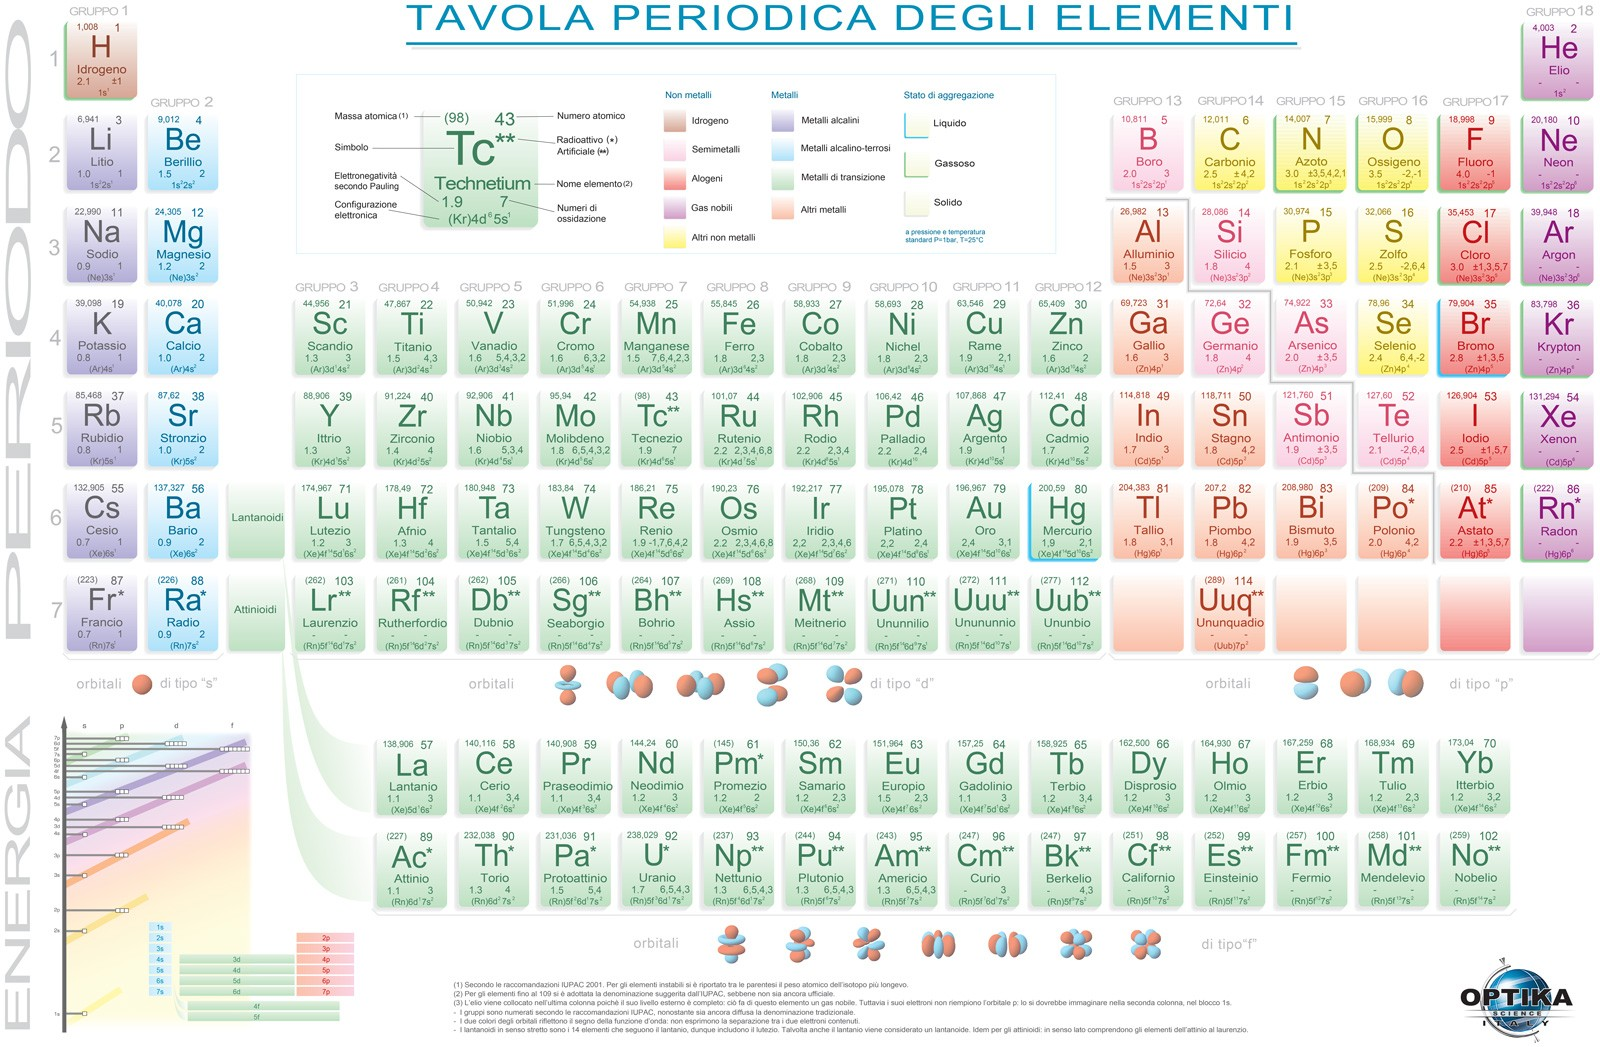 6300 Tabla periódica de los elementos - Optikascience